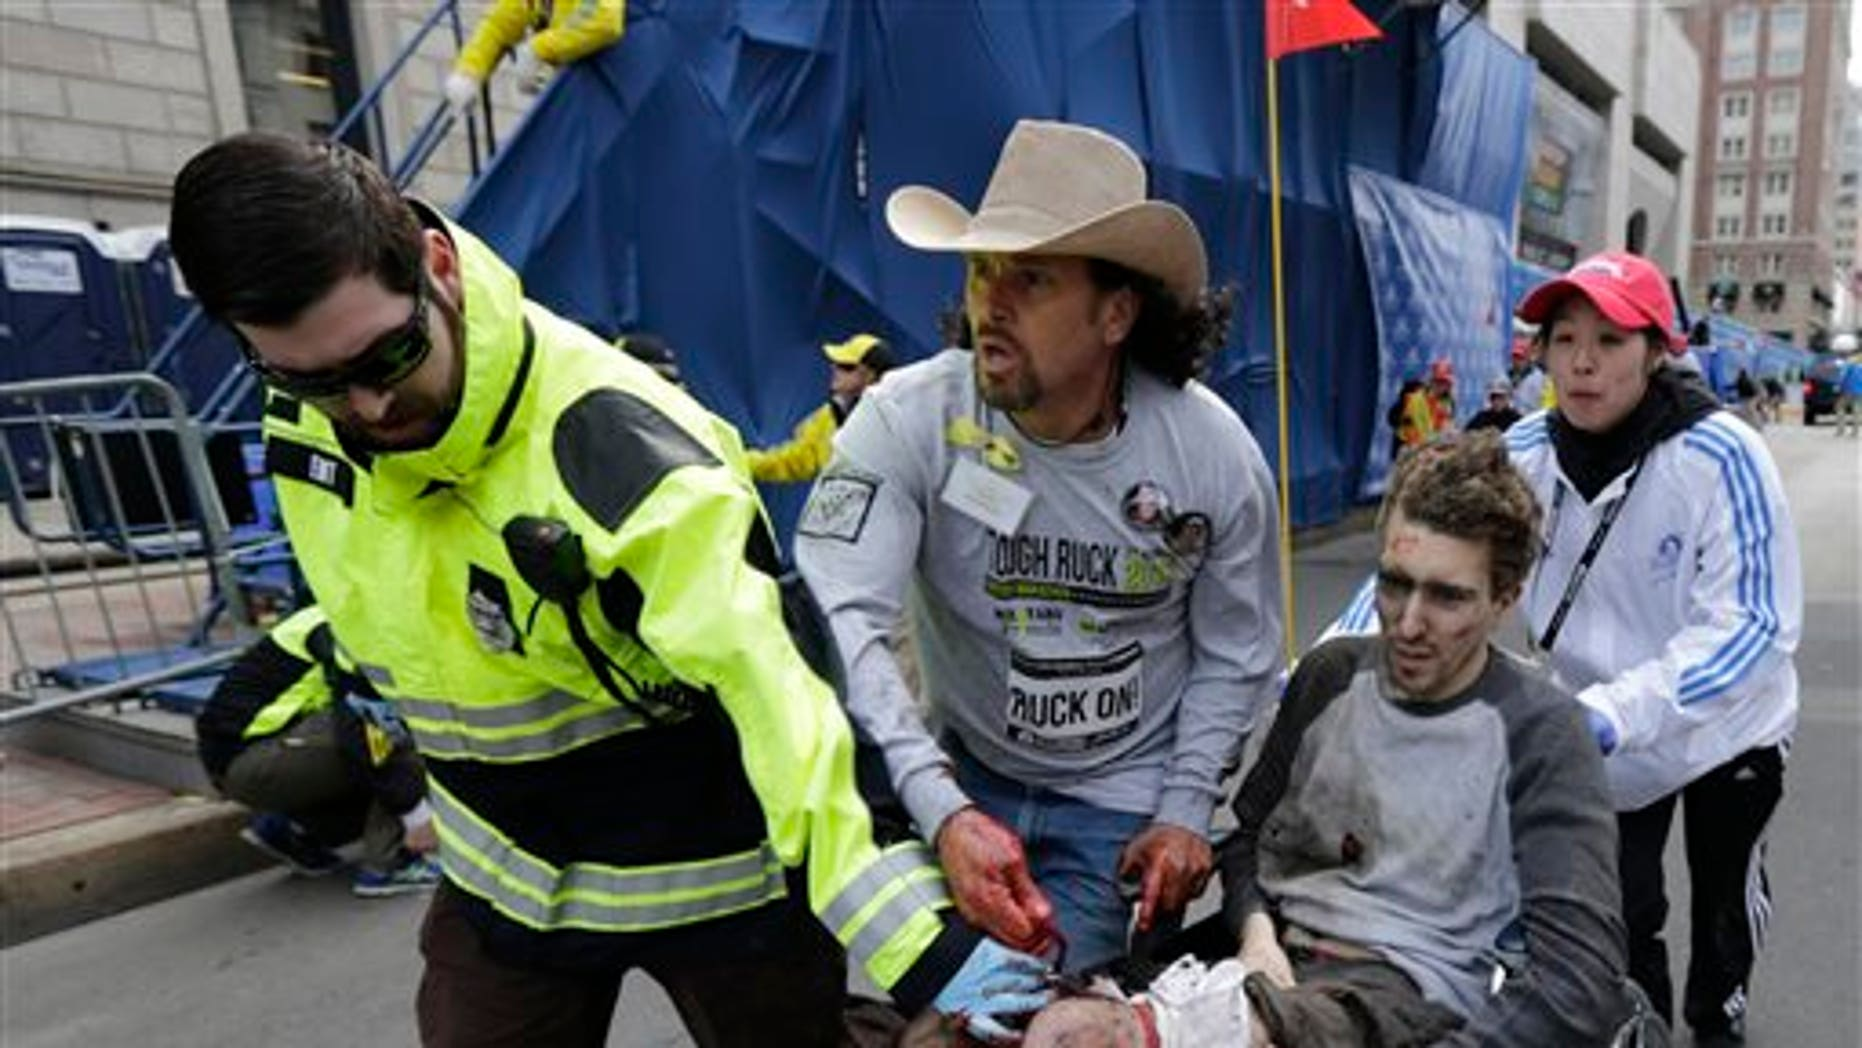 April 15: An emergency responder and volunteers, including Carlos Arredondo, in the cowboy hat, push Jeff Bauman in a wheel chair after he was injured in an explosion near the finish line of the Boston Marathon.